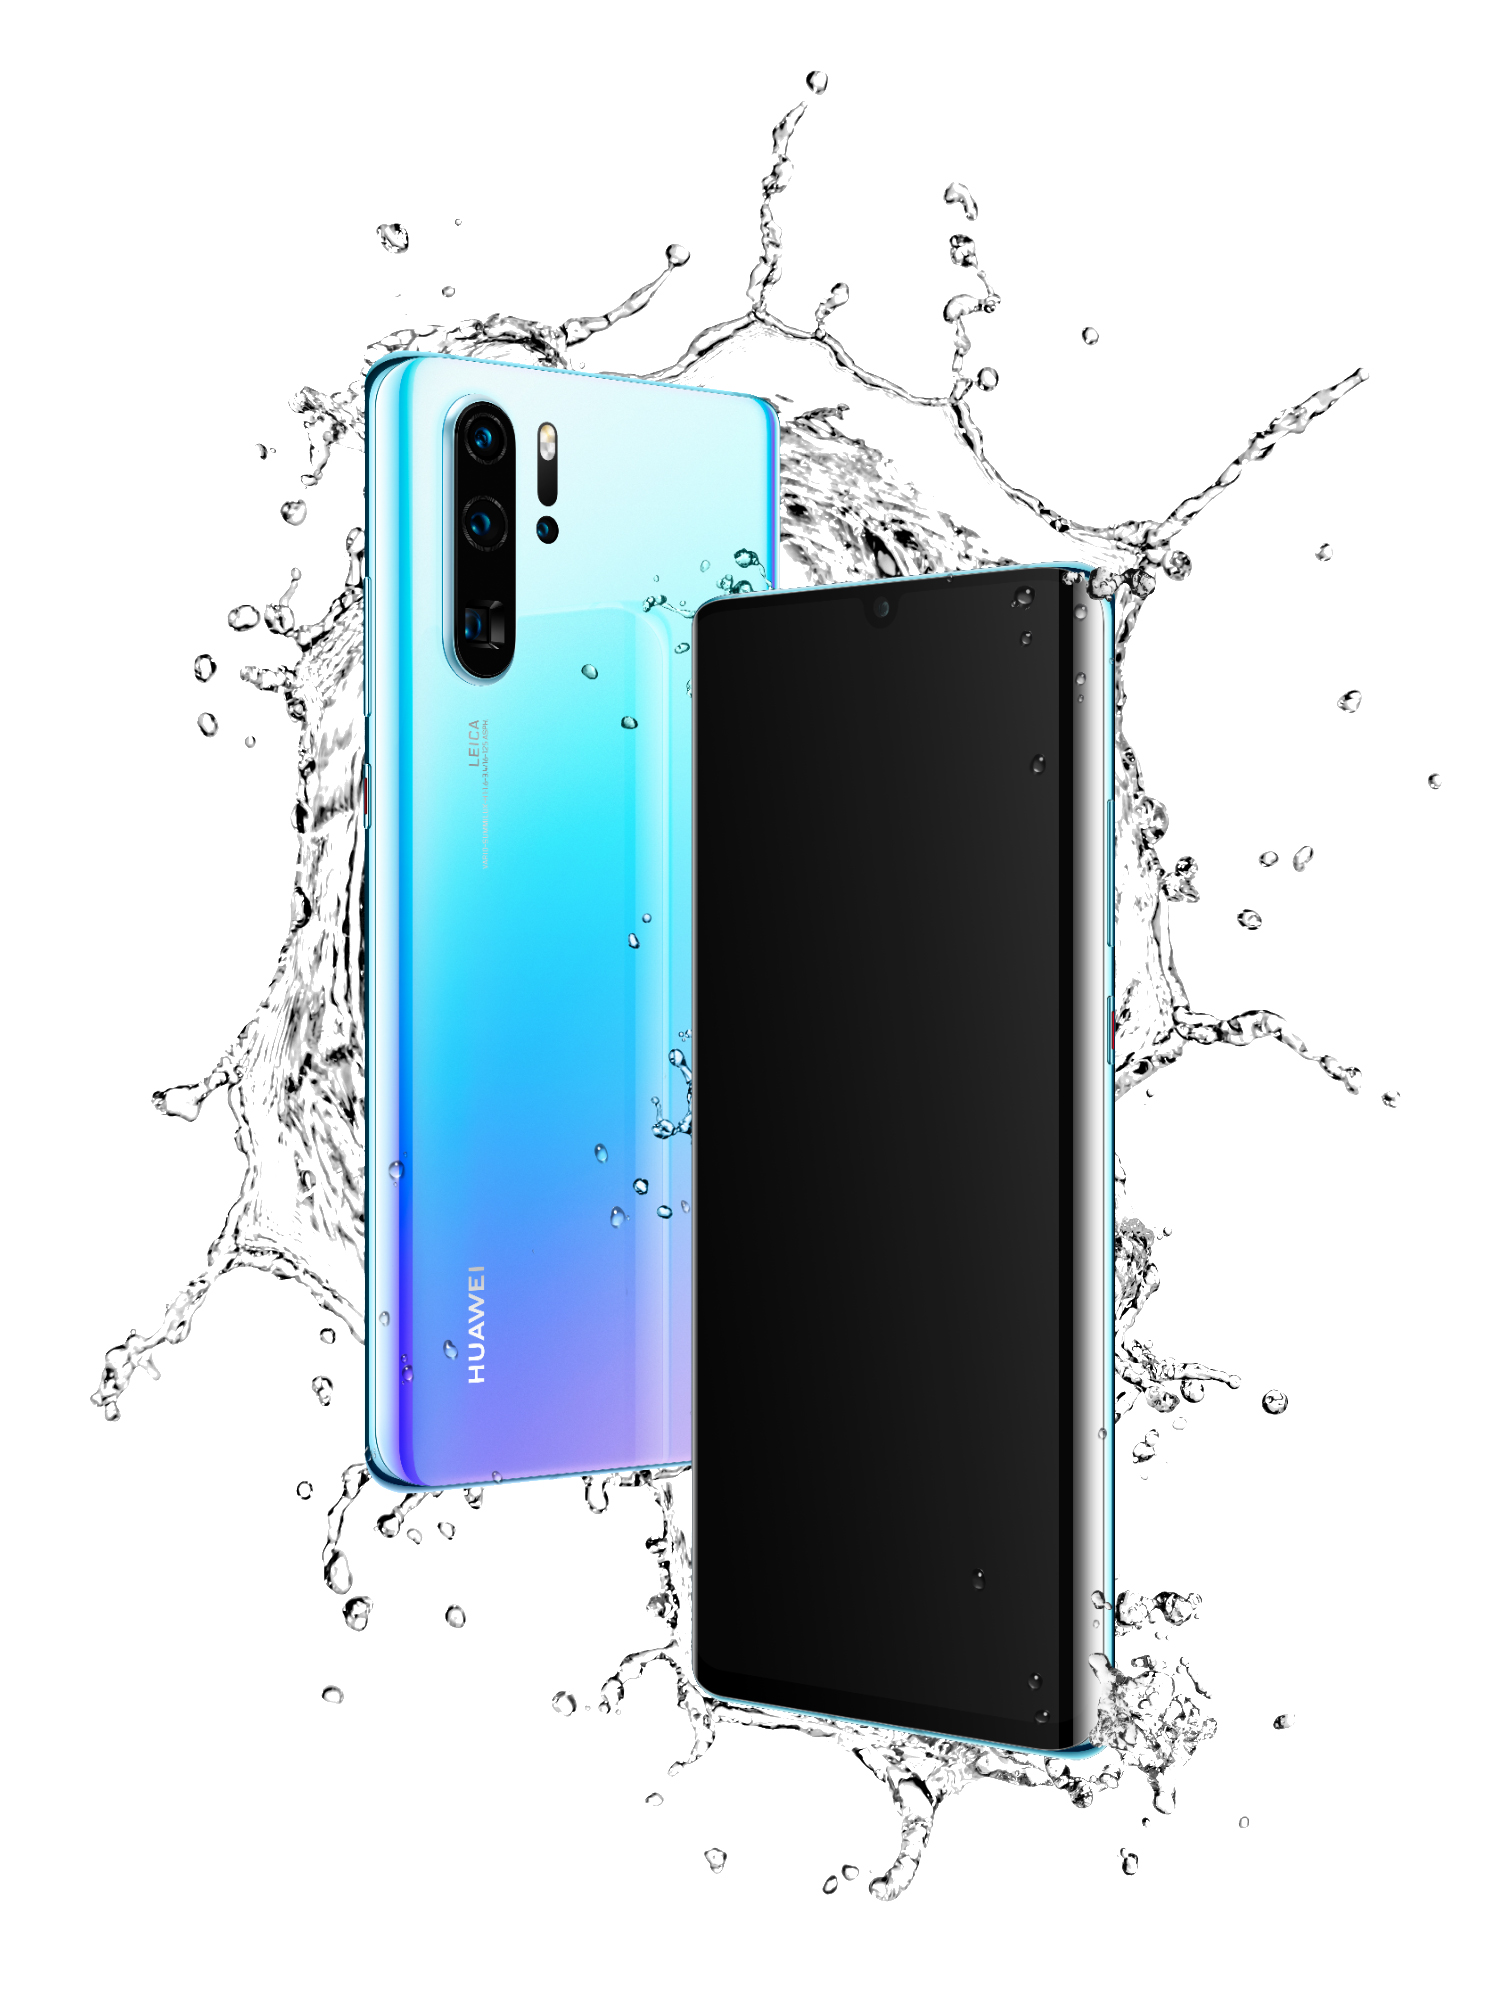 P30 Pro The IP68 rated water